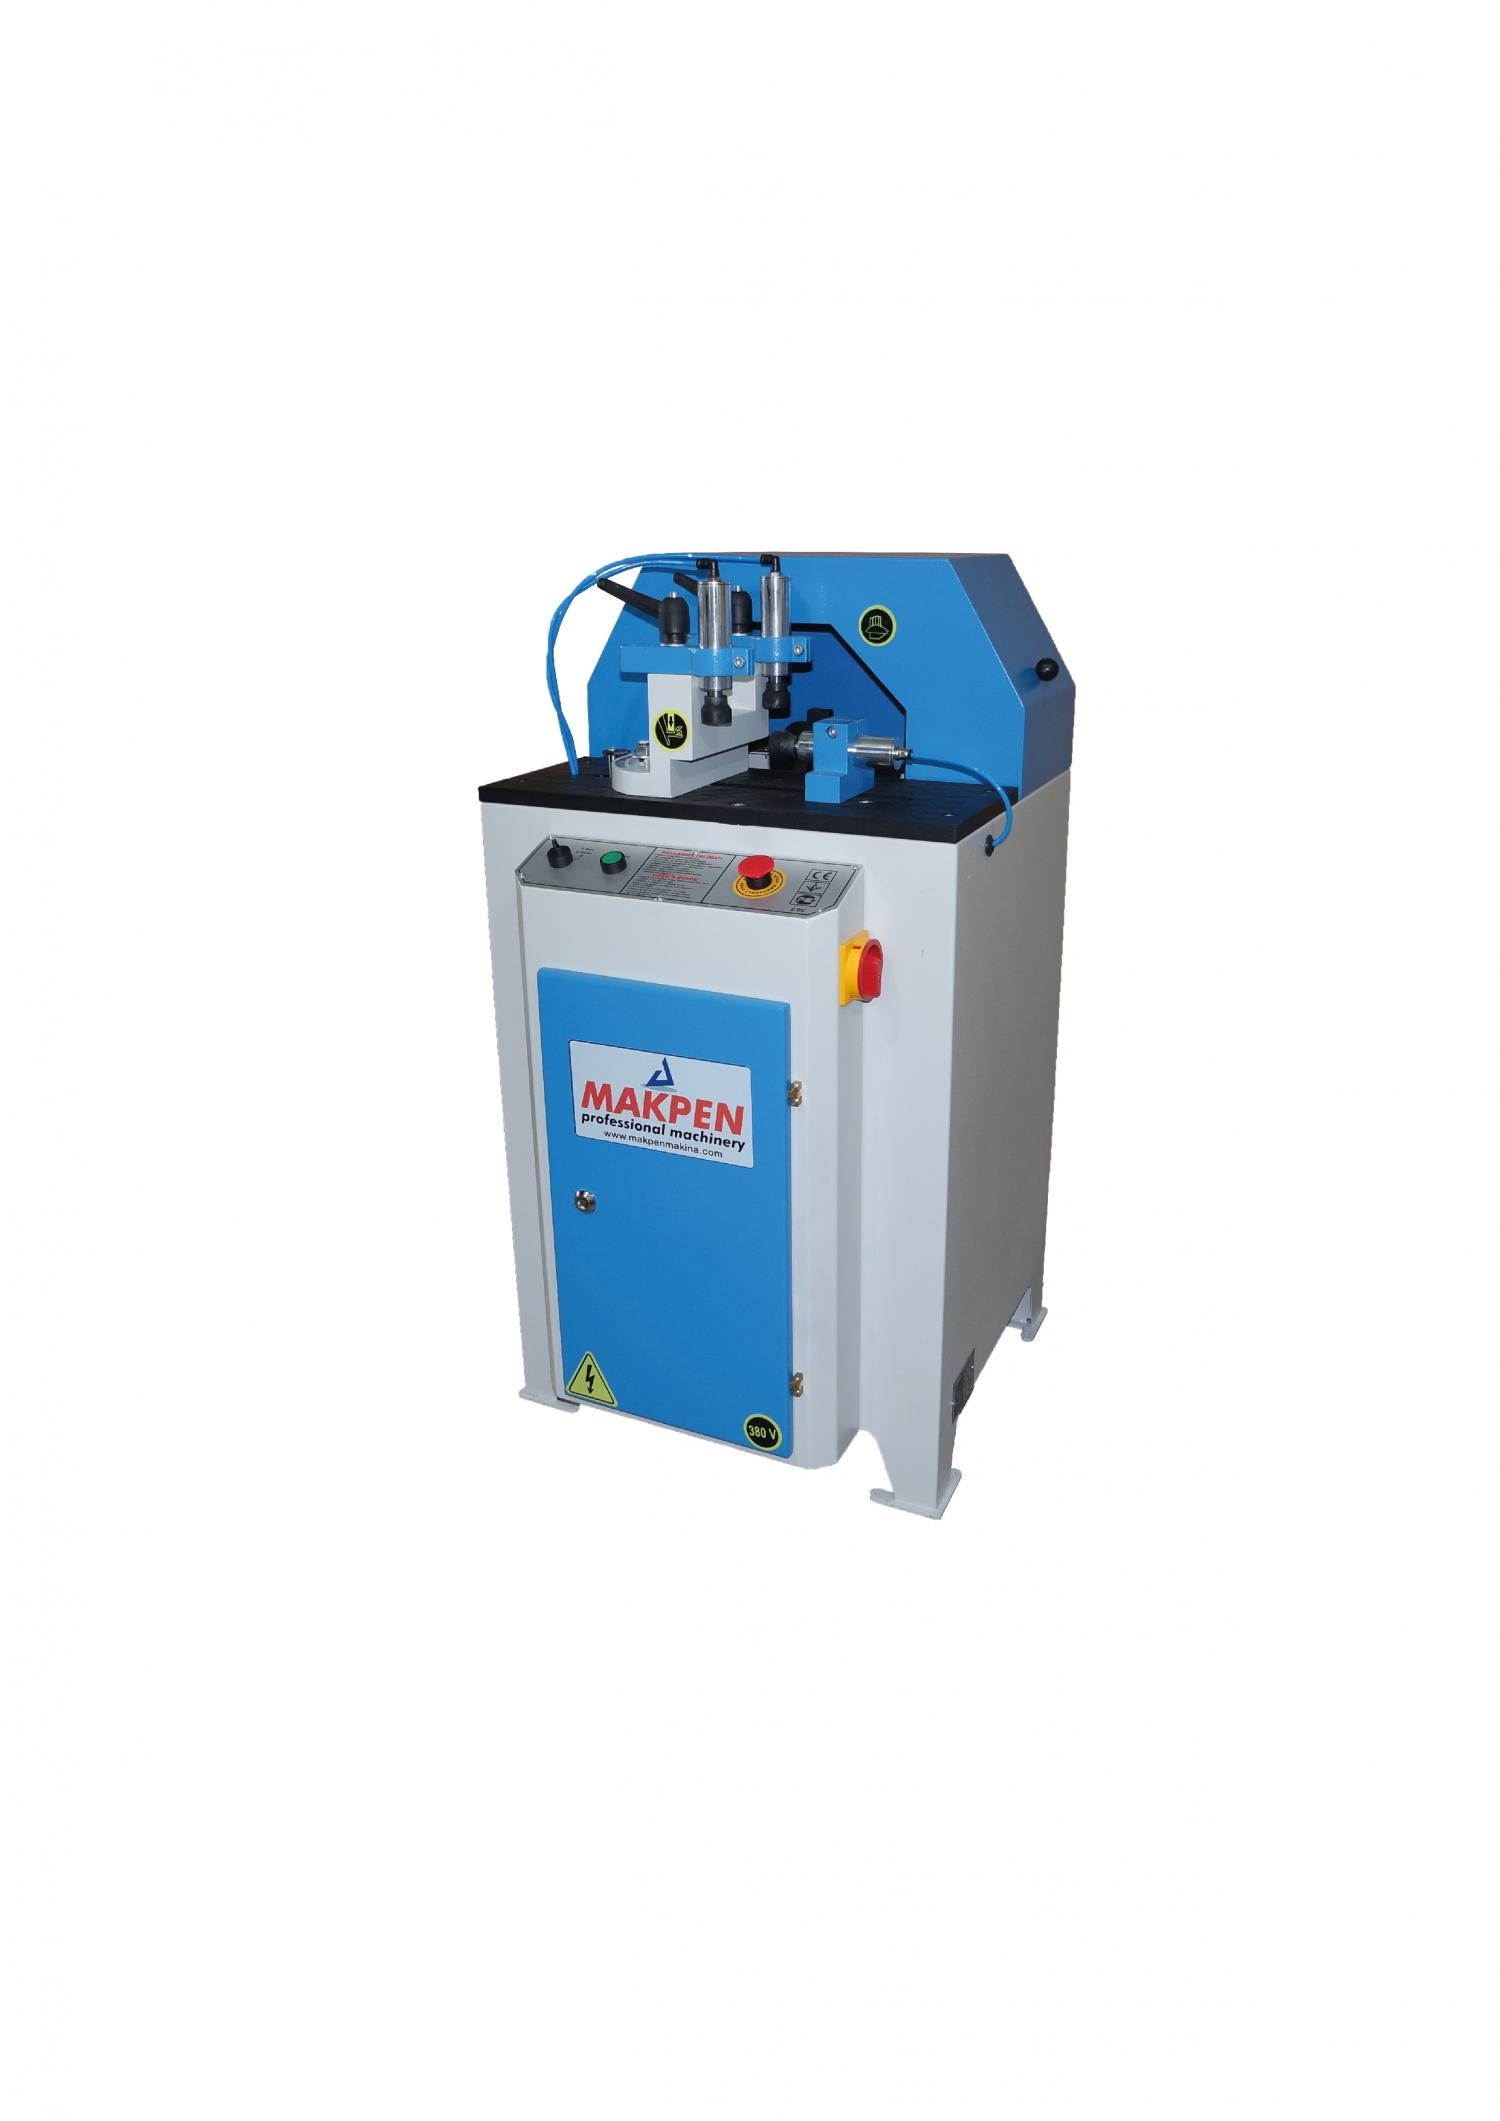 2BC - AUTOMATIC END MILLING MACHINE